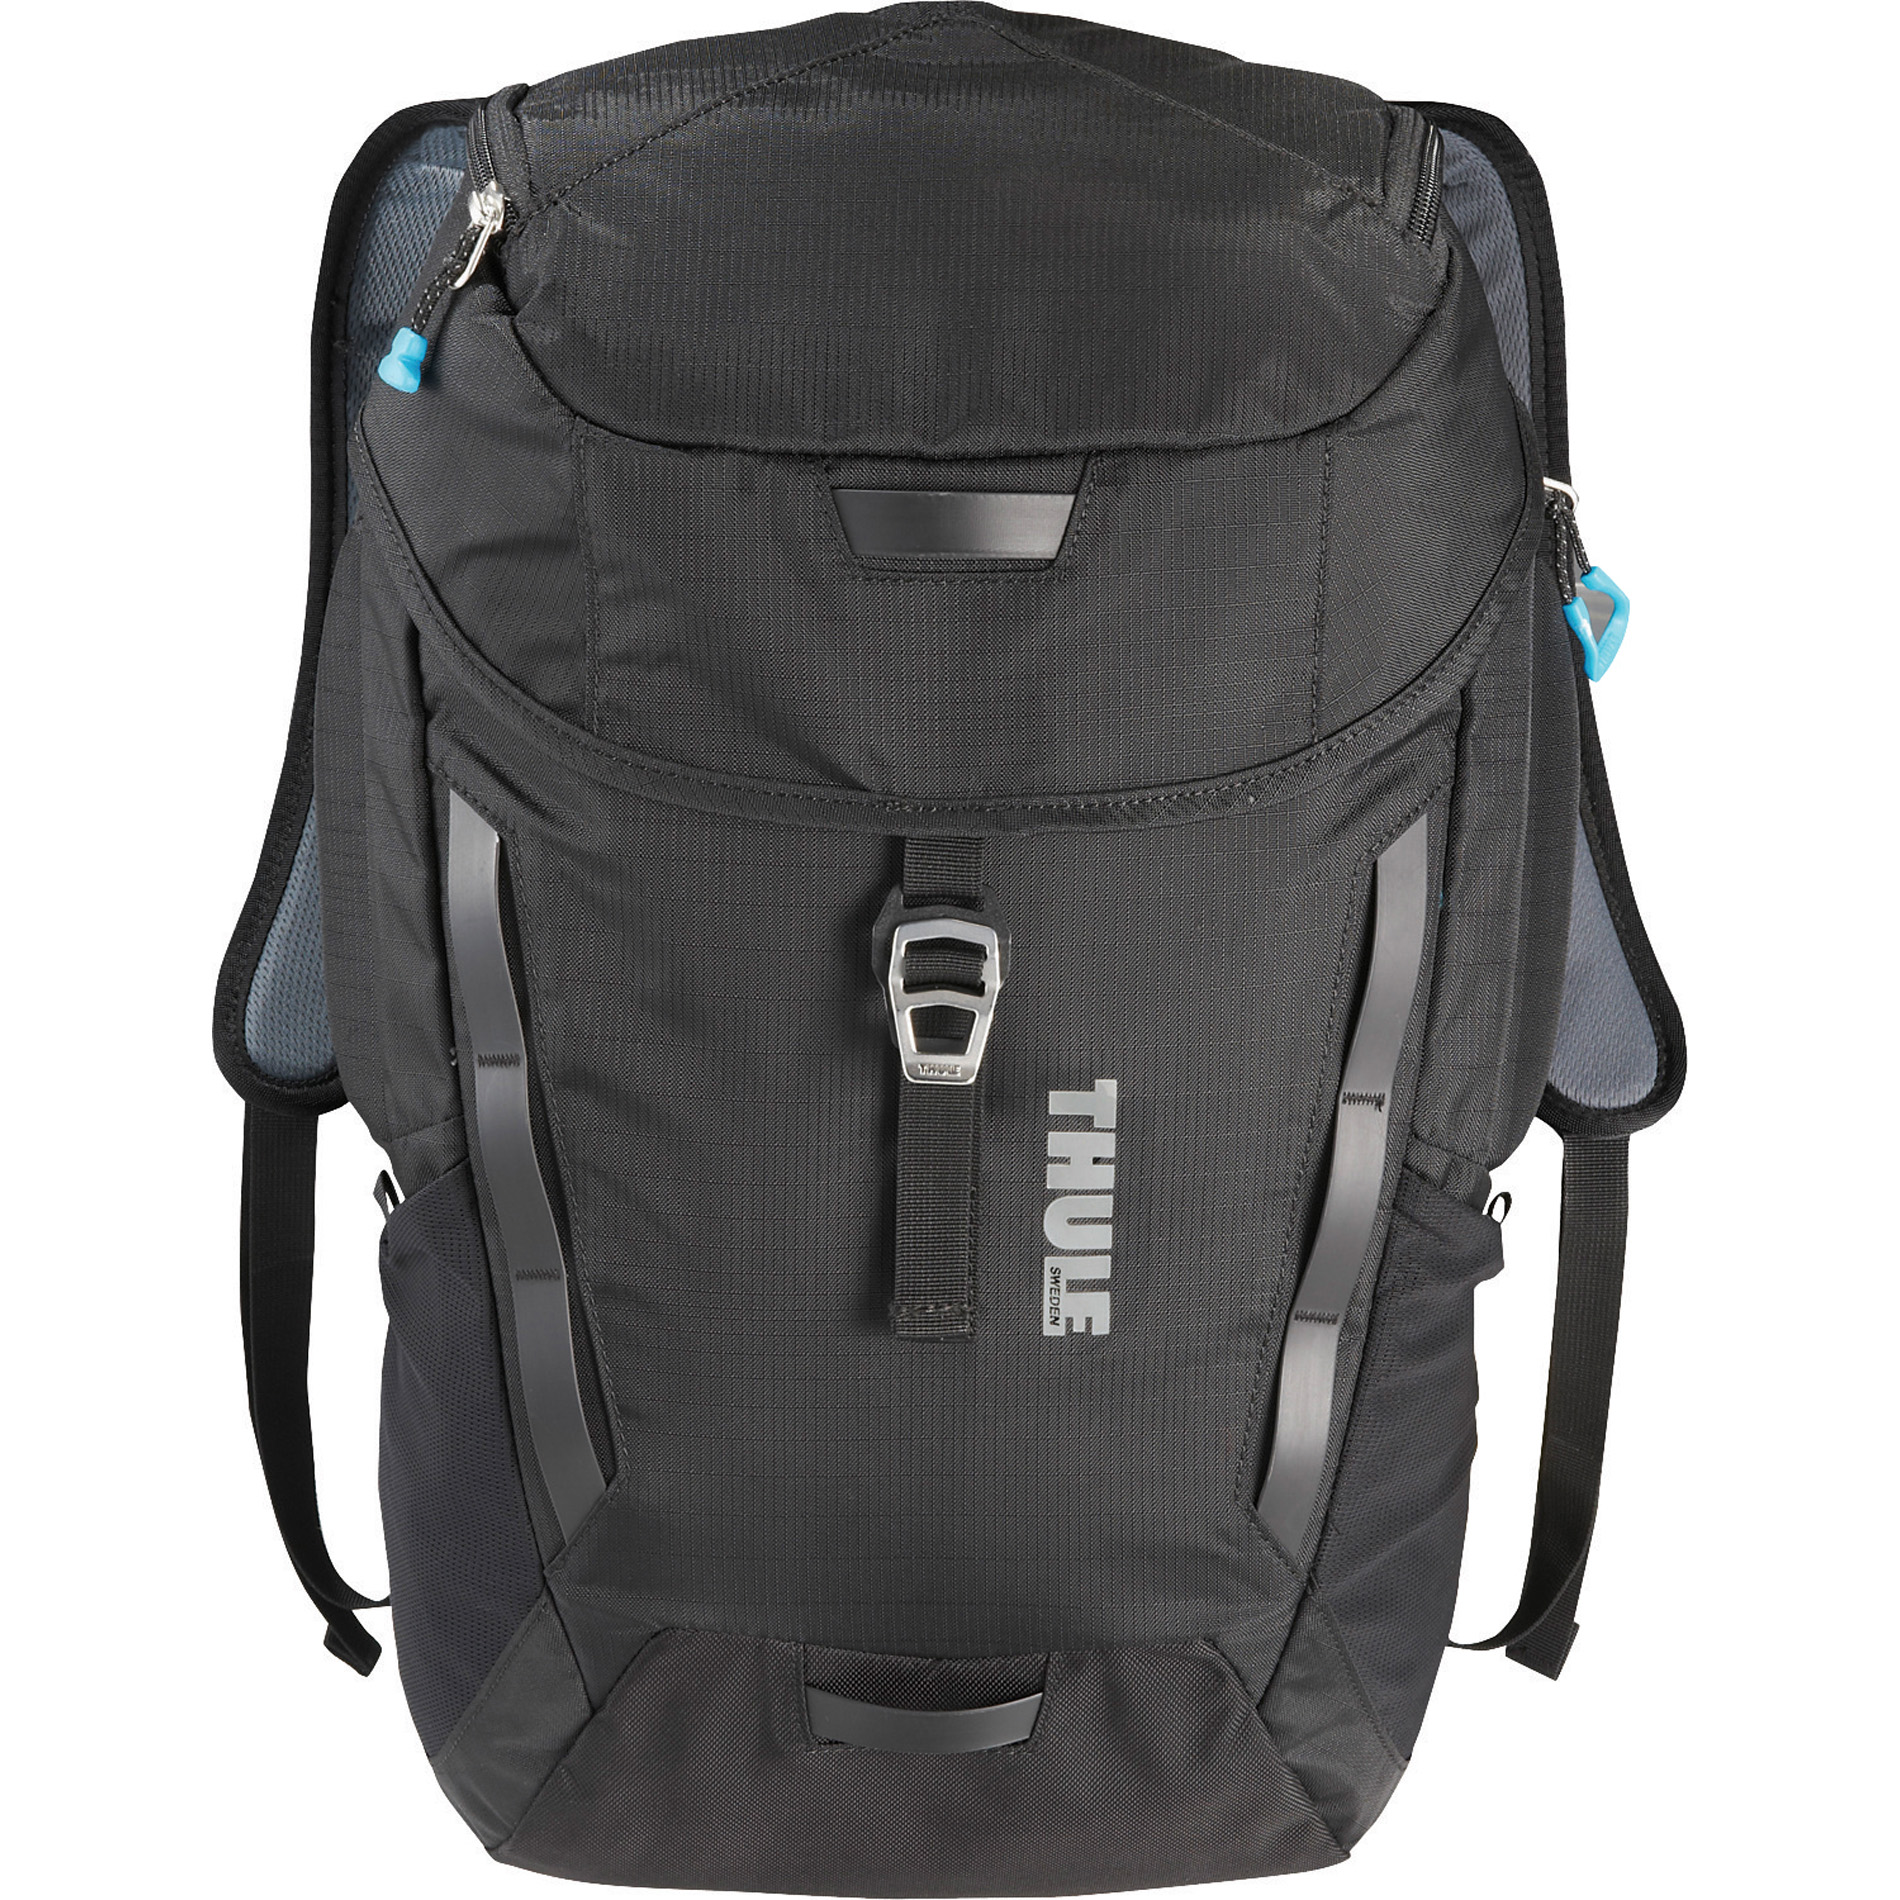 Thule 9020-03 - Enroute Mosey Backpack